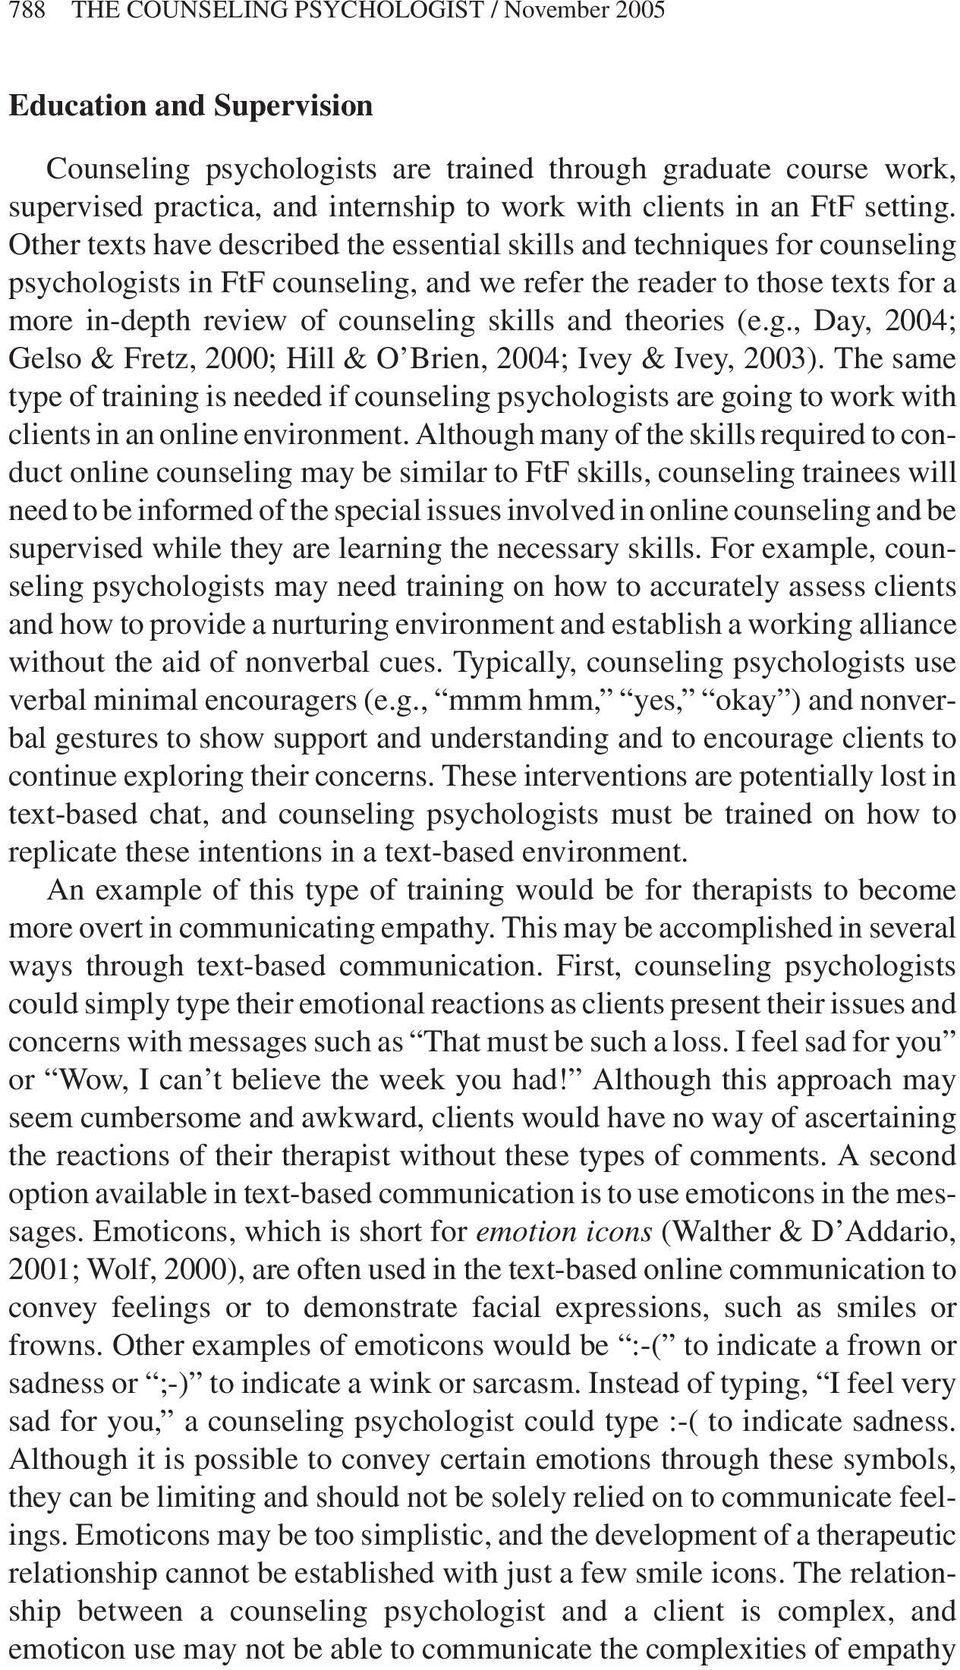 Other texts have described the essential skills and techniques for counseling psychologists in FtF counseling, and we refer the reader to those texts for a more in-depth review of counseling skills